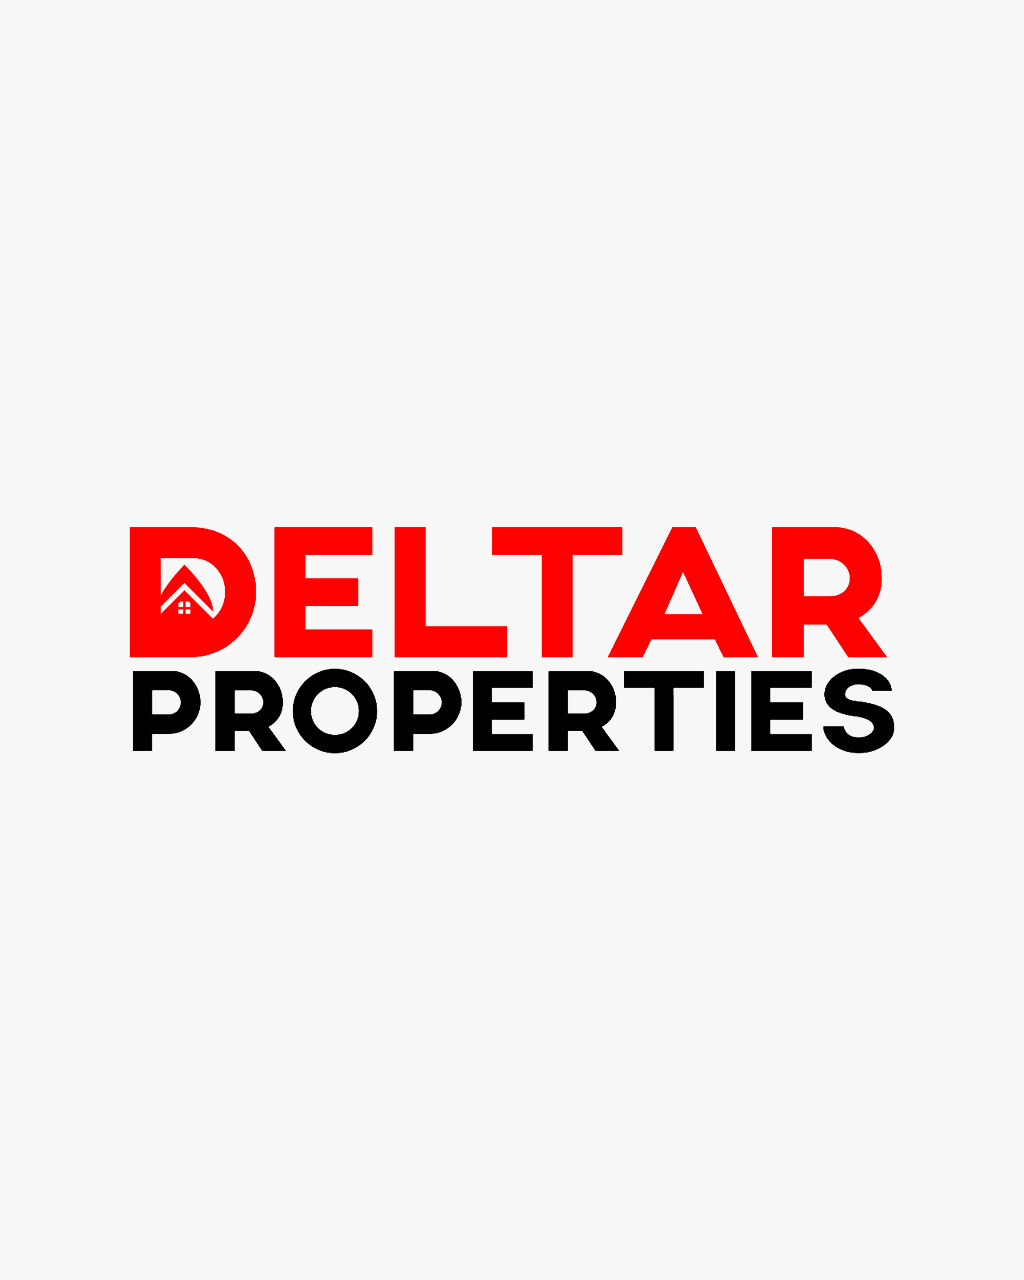 Why Invest in Deltar Properties